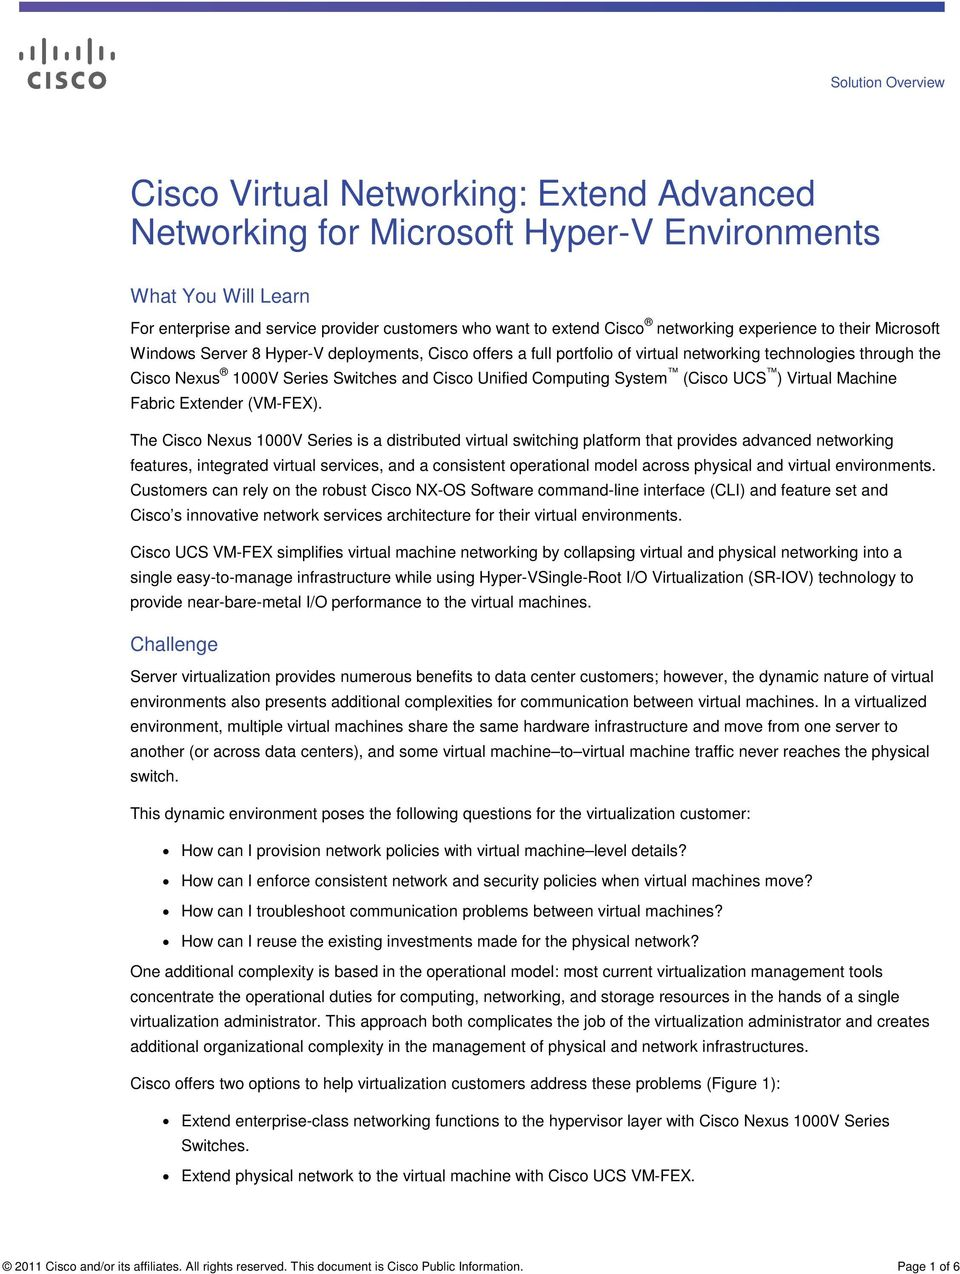 Unified Computing System (Cisco UCS ) Virtual Machine Fabric Extender (VM-FEX).